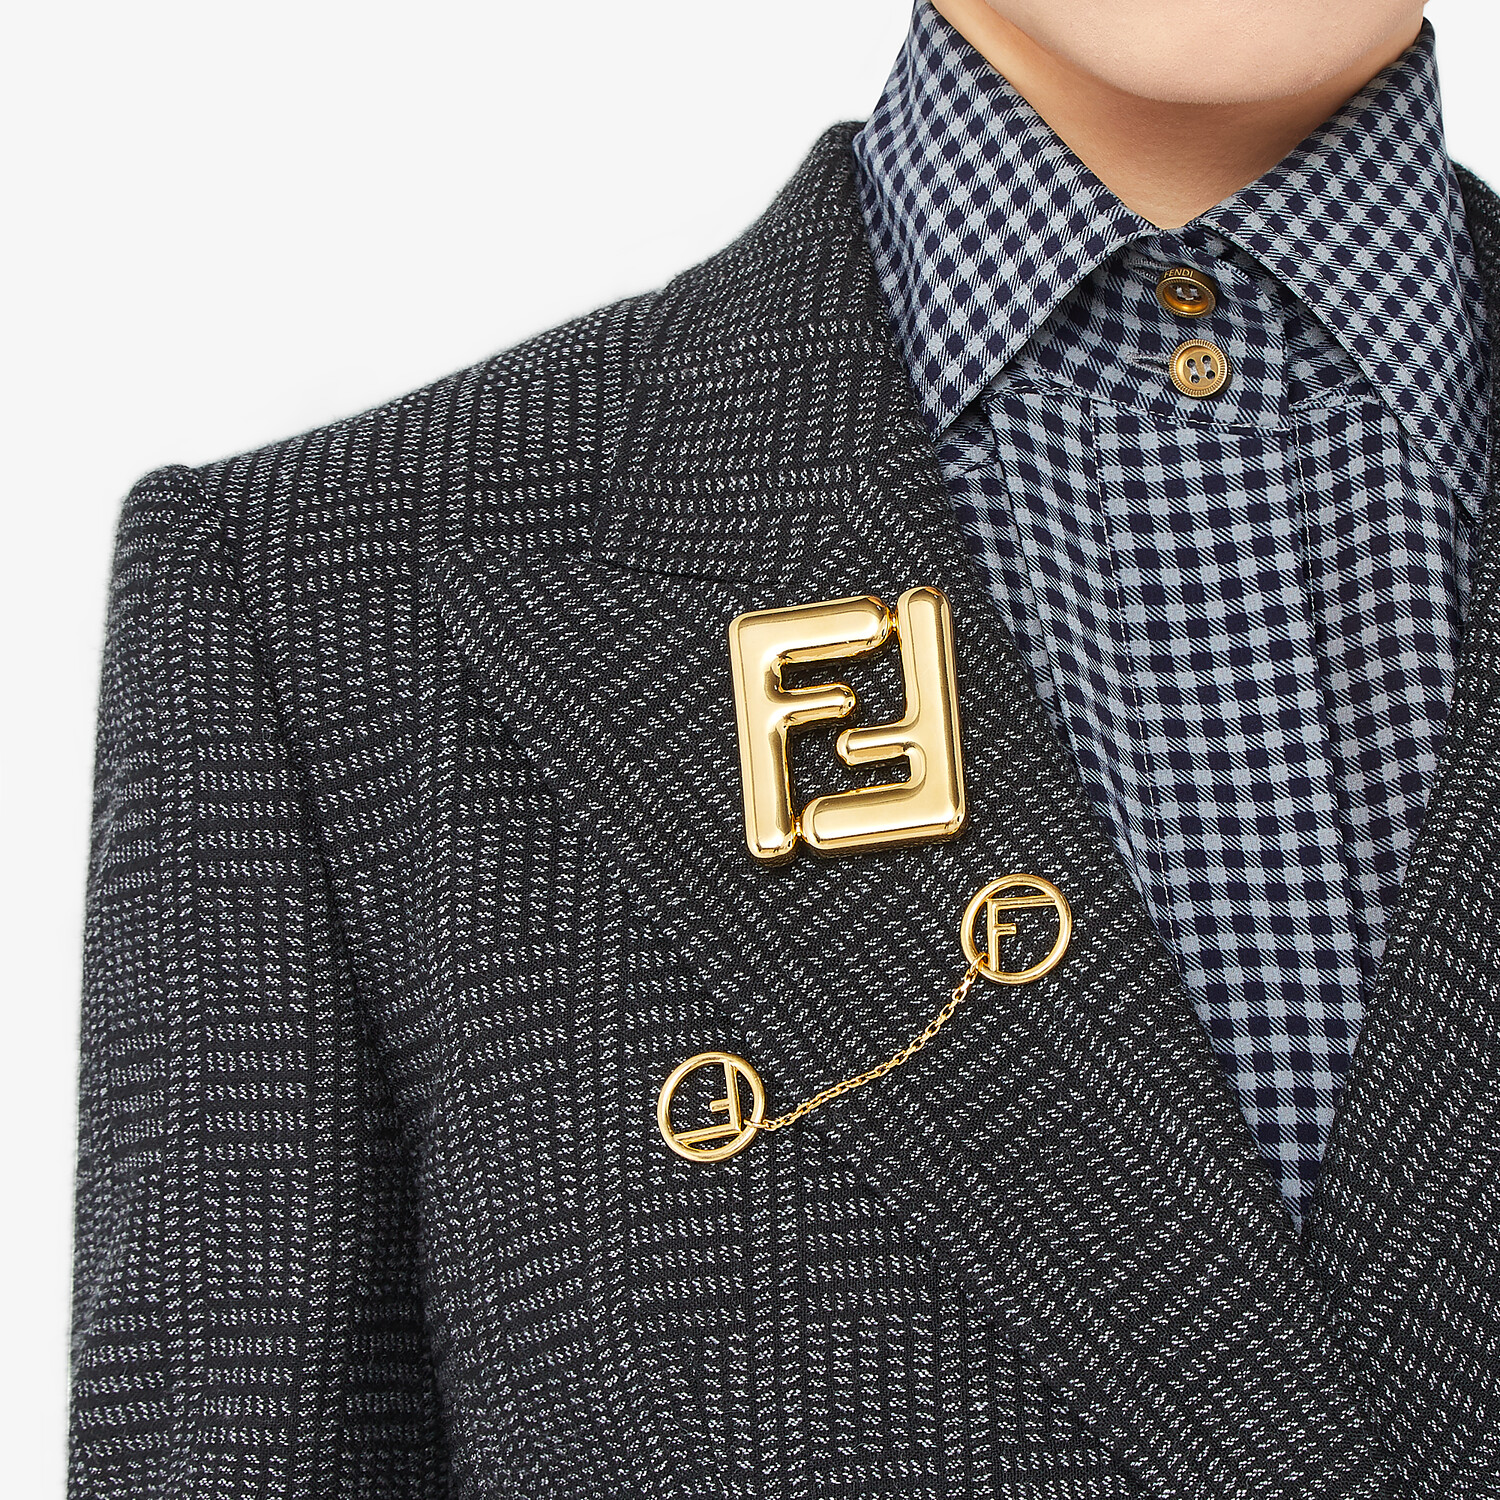 FENDI MAXI LOGO BROOCH - Gold-colored brooch - view 3 detail